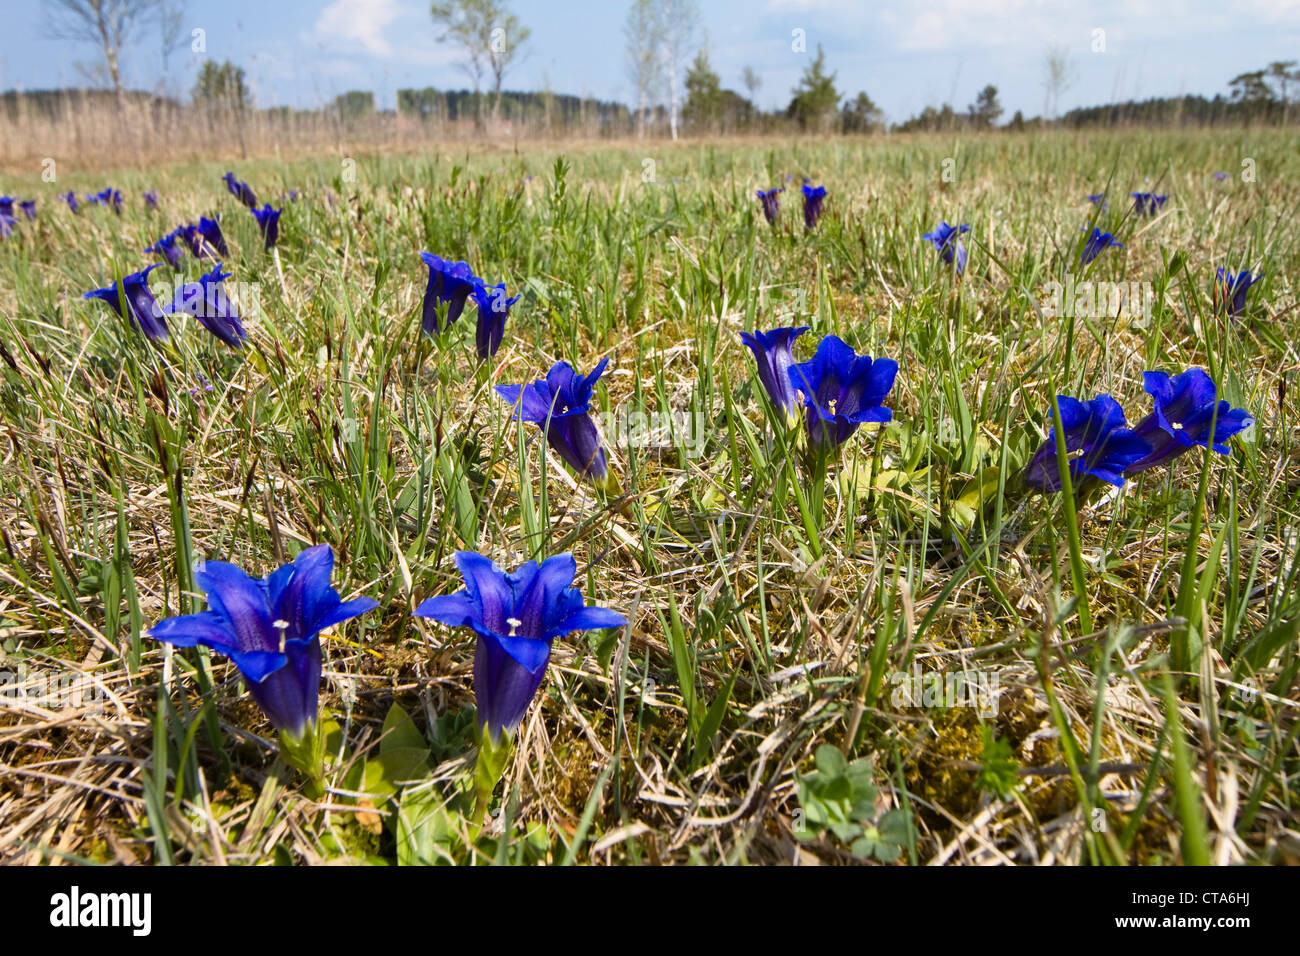 Meadow with gentians (Gentiana clusii), Upper Bavaria, Germany - Stock Image